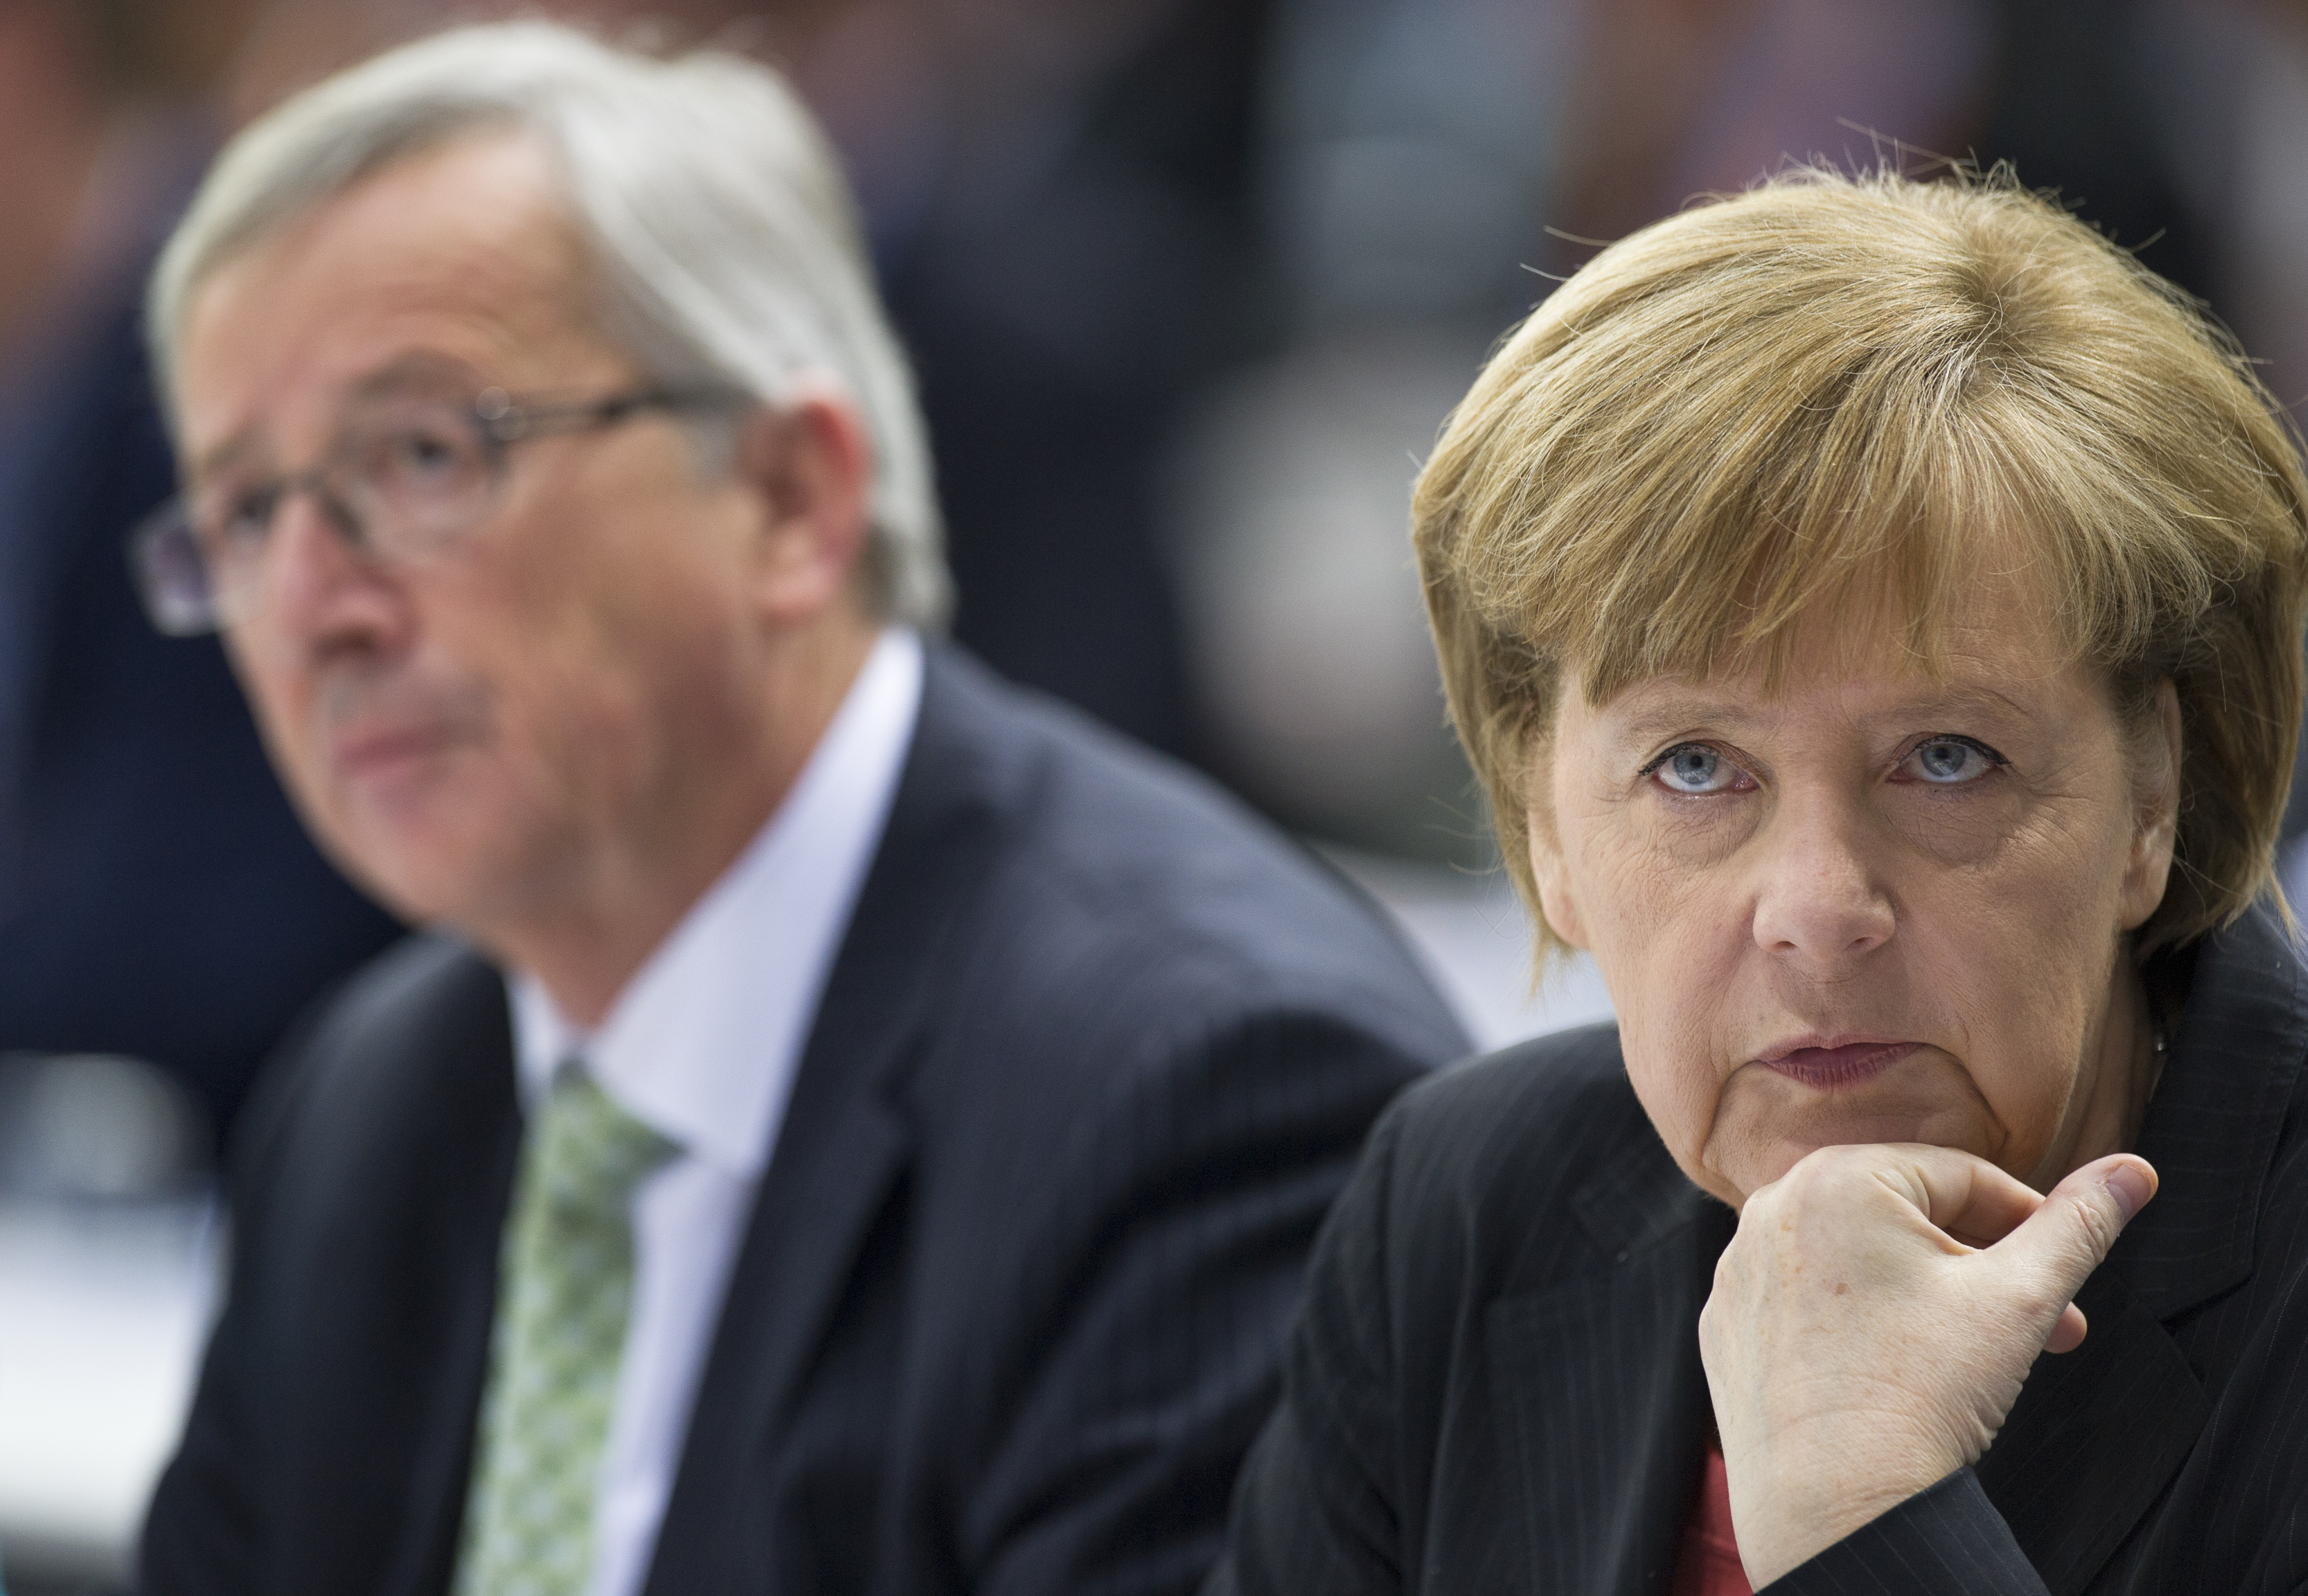 German Chancellor Merkel, leader of the CDU and Juncker top candidate of European People's Party for European parliamentary elections, attend the CDU congress in Berlin